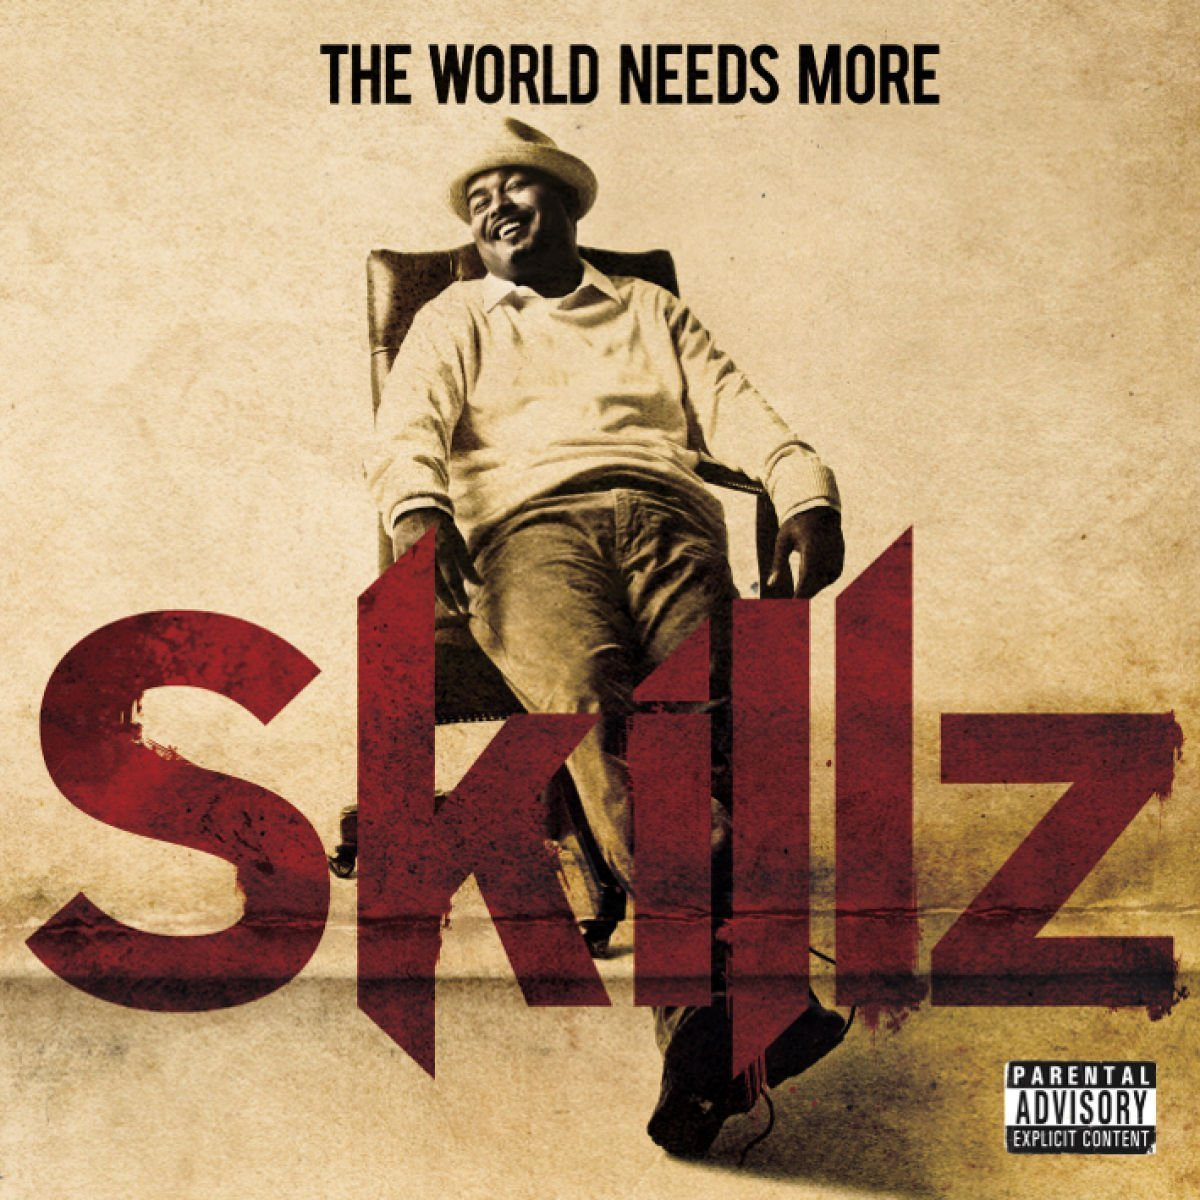 Skillz_-_The_World_Needs_More_Skillz_Cover